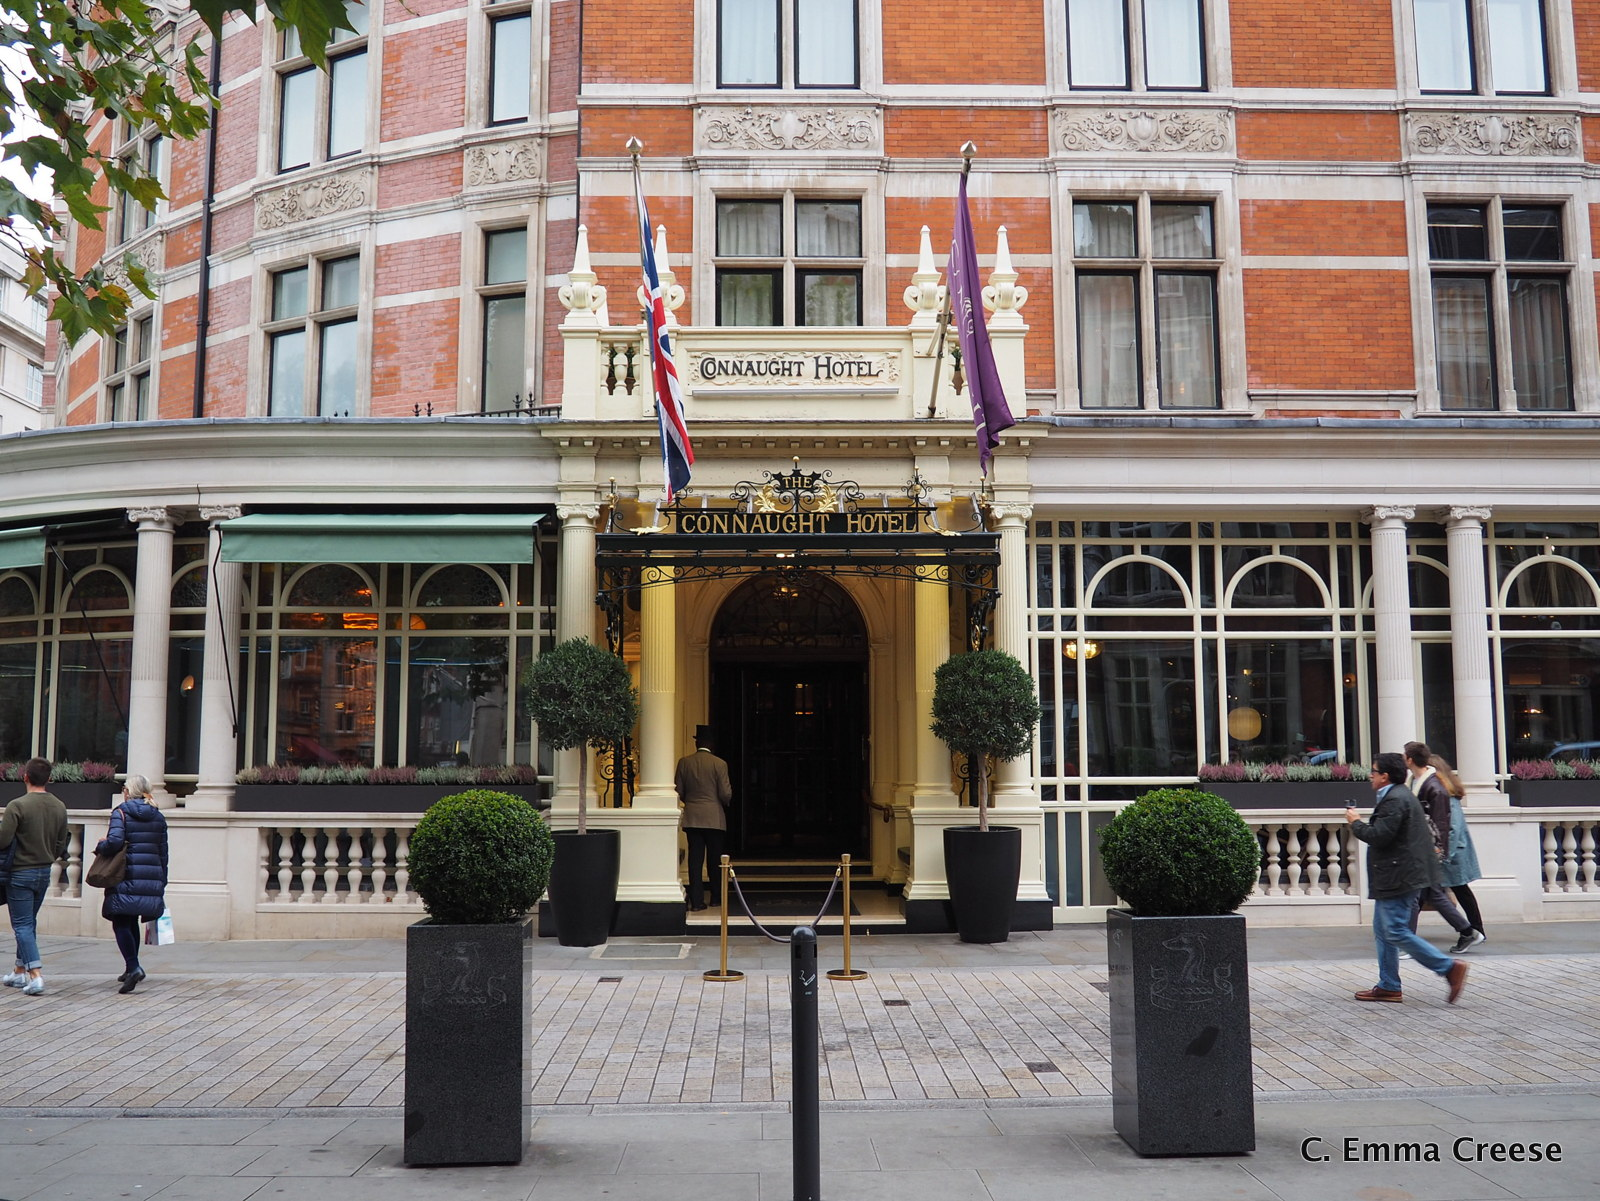 A Two Michelin Star Lunch: Hélène Darroze at The Connaught Hotel, Mayfair